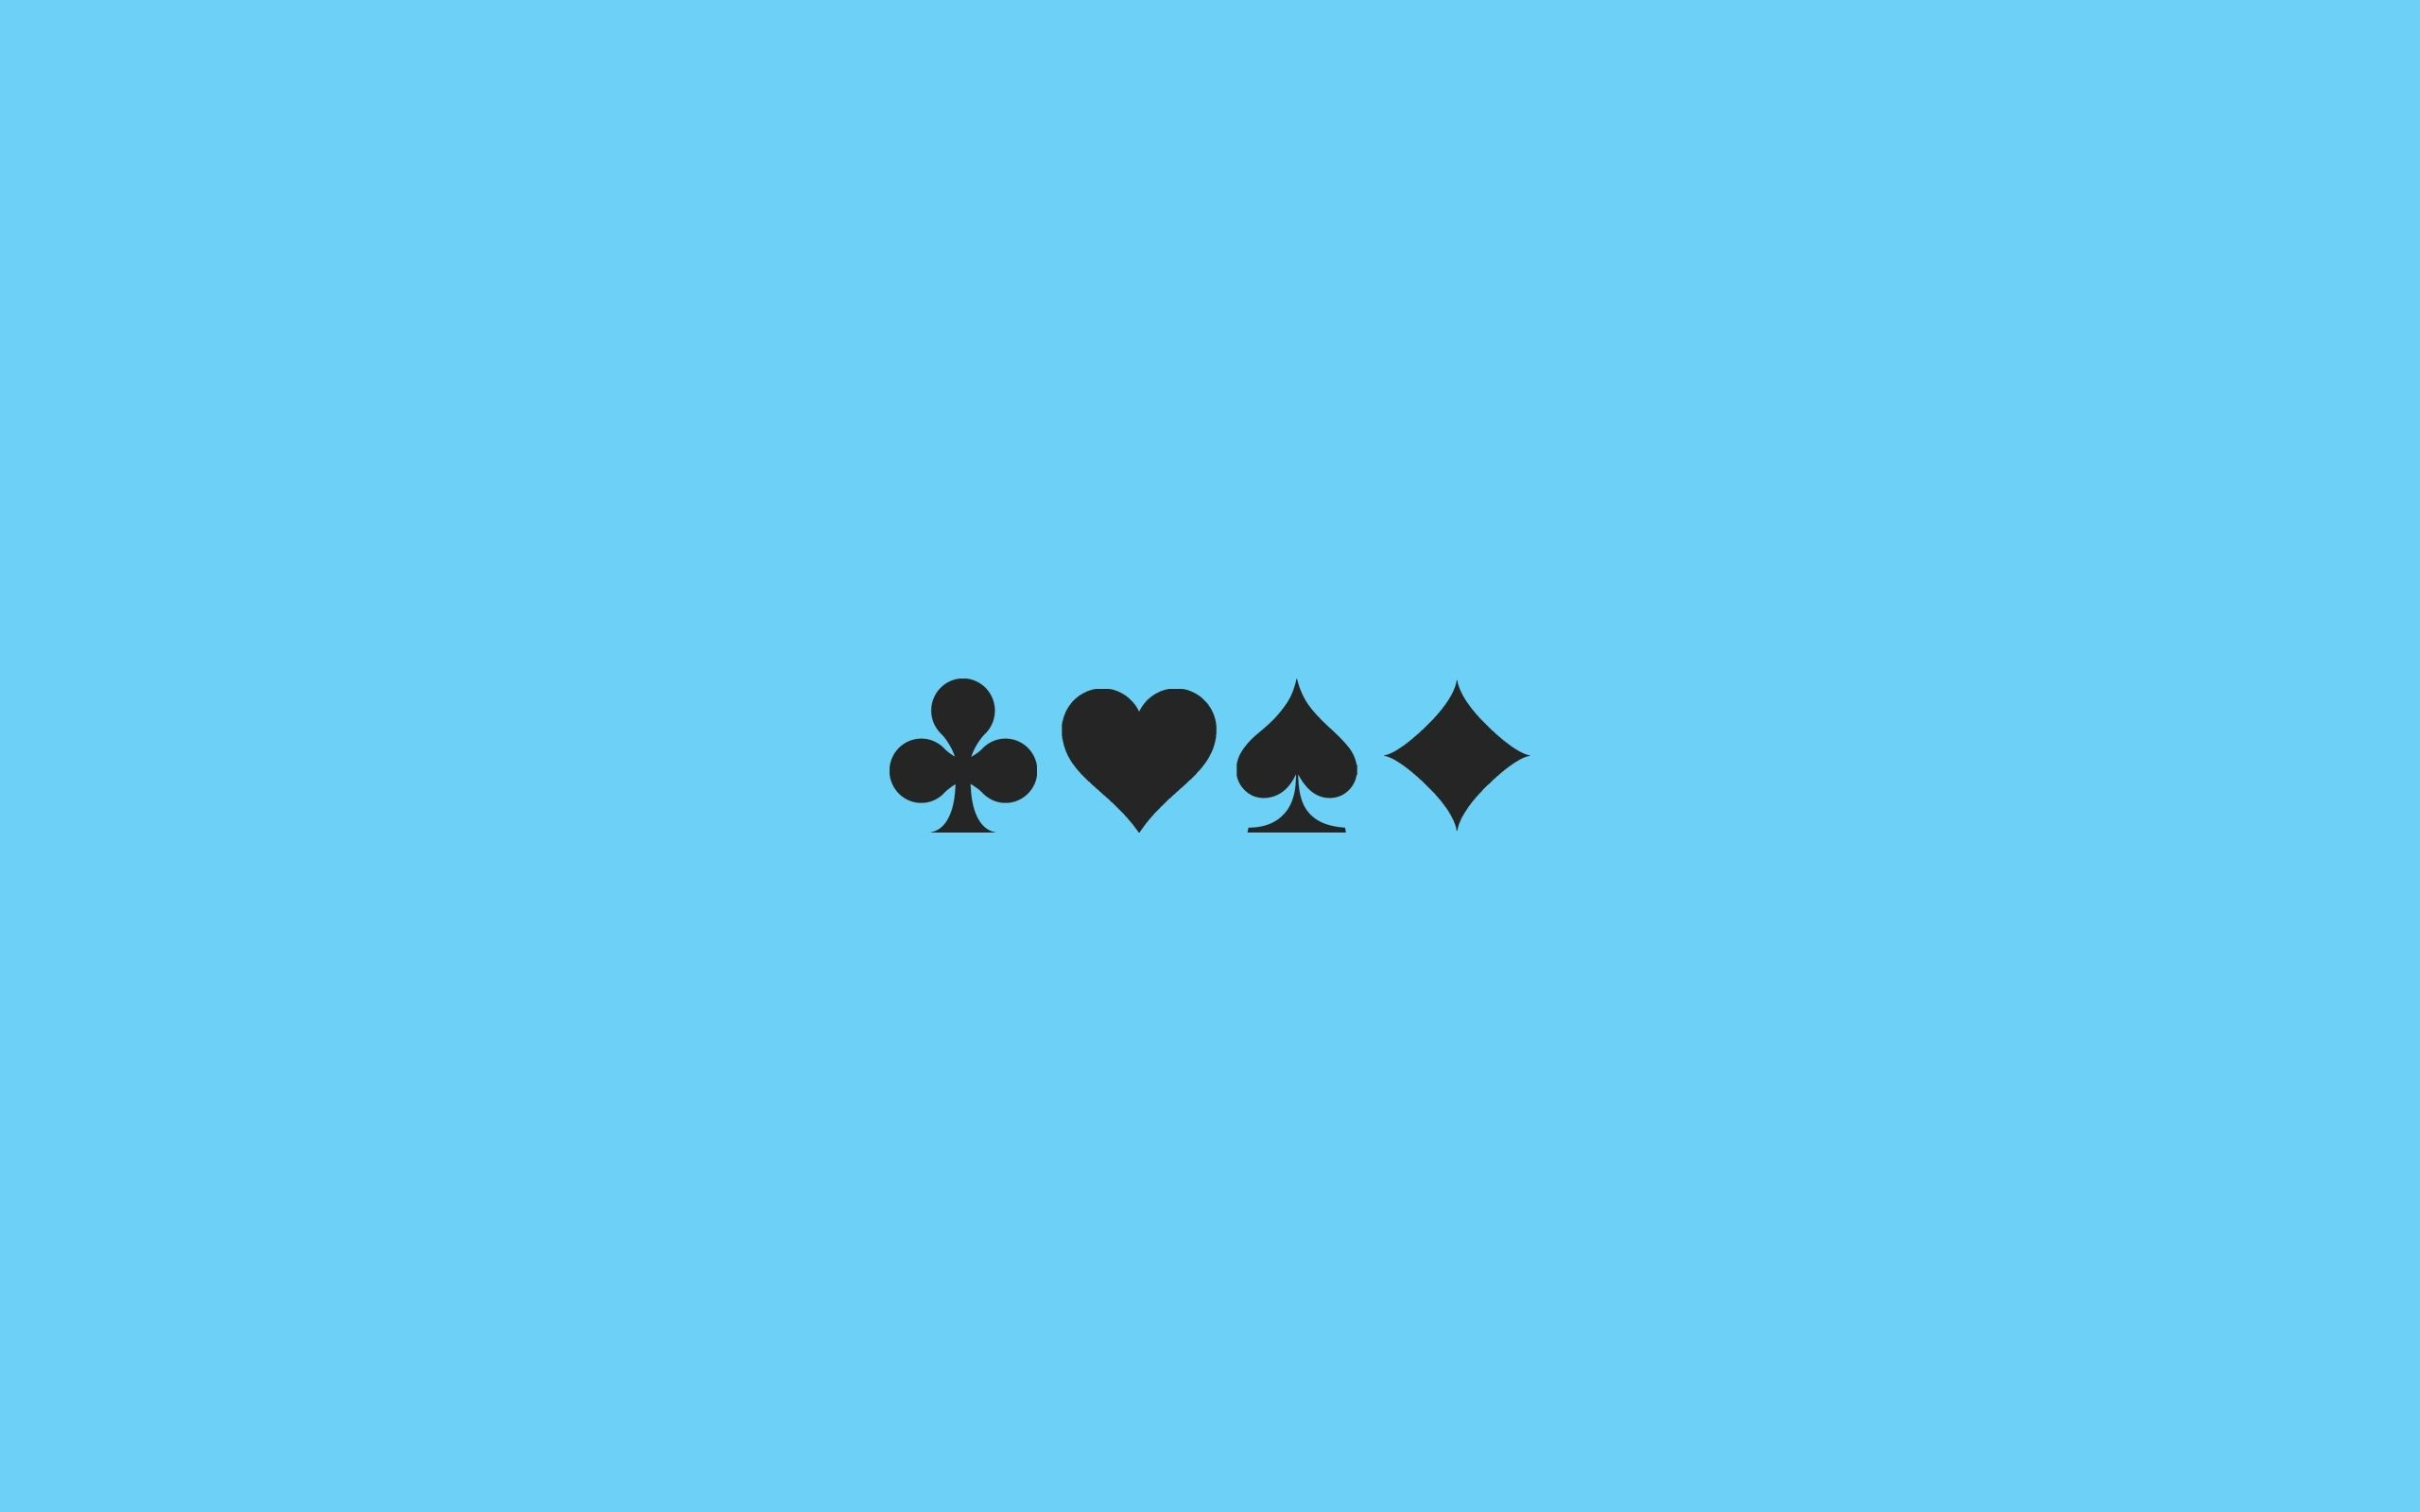 Cool desktop wallpaper of card suits clubs hearts picture - Cool card wallpapers ...